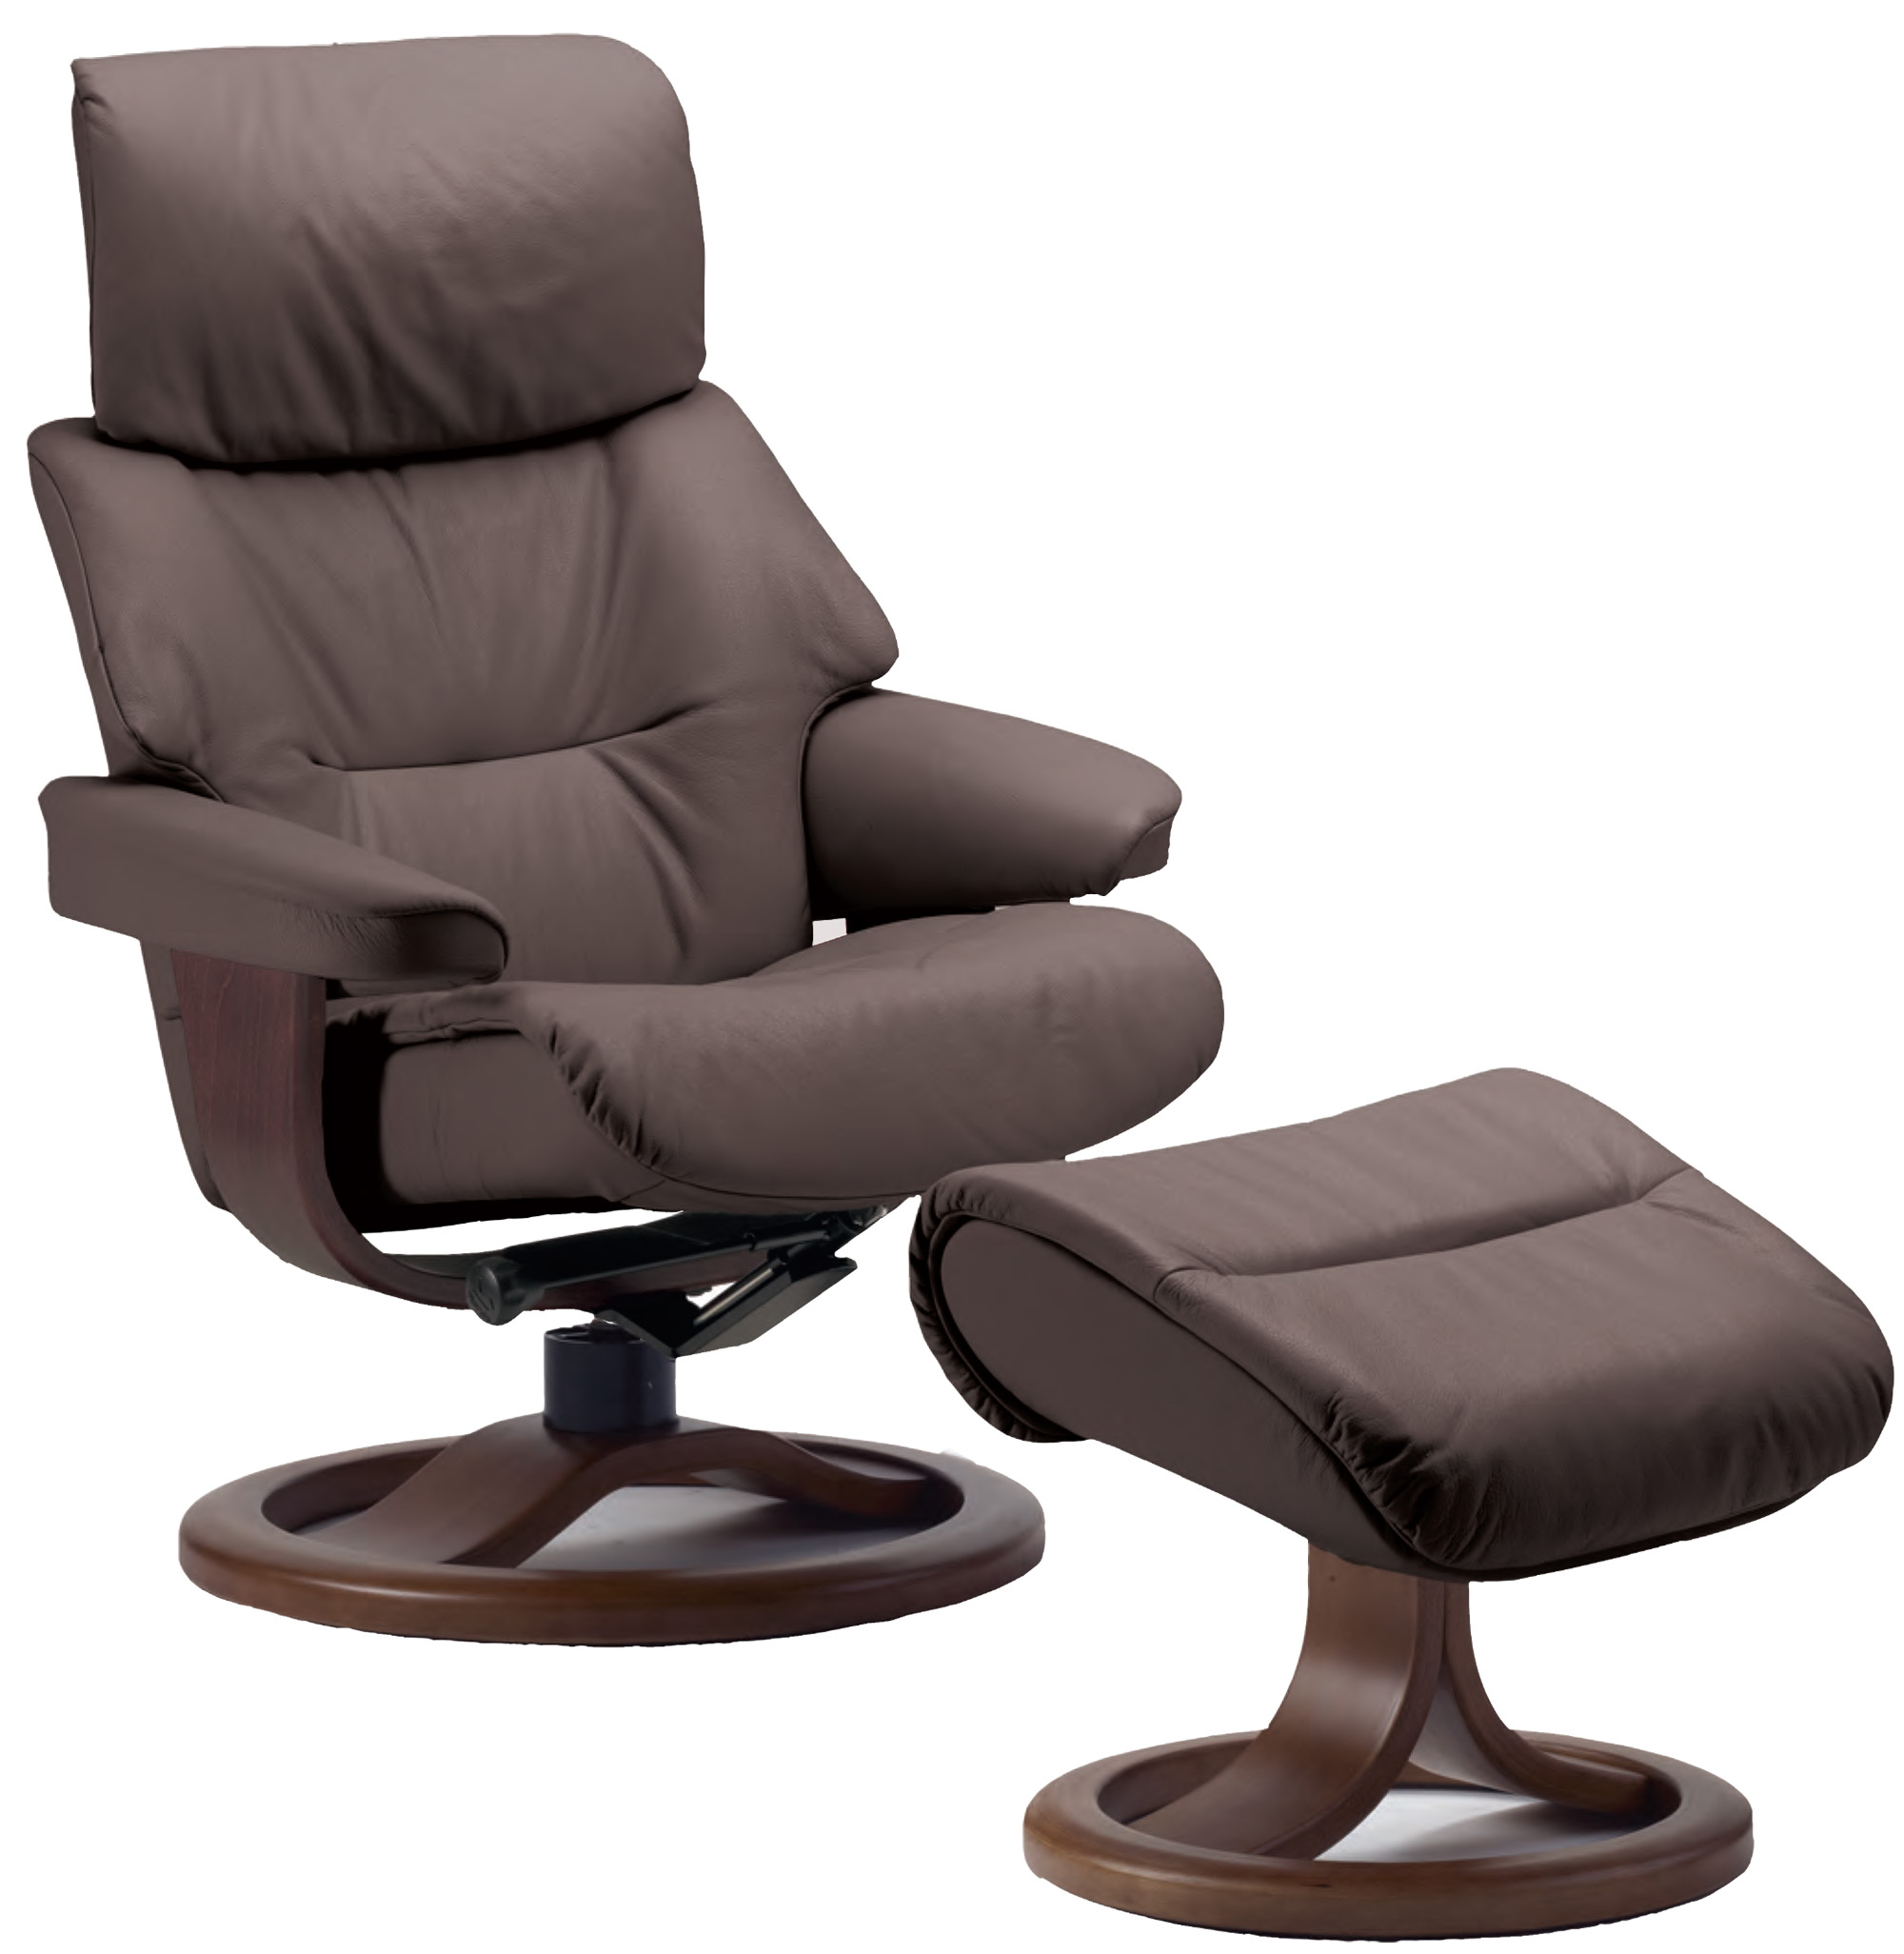 in furniture recliner copy arizona atlanta austin custom chicago chair leather p creations